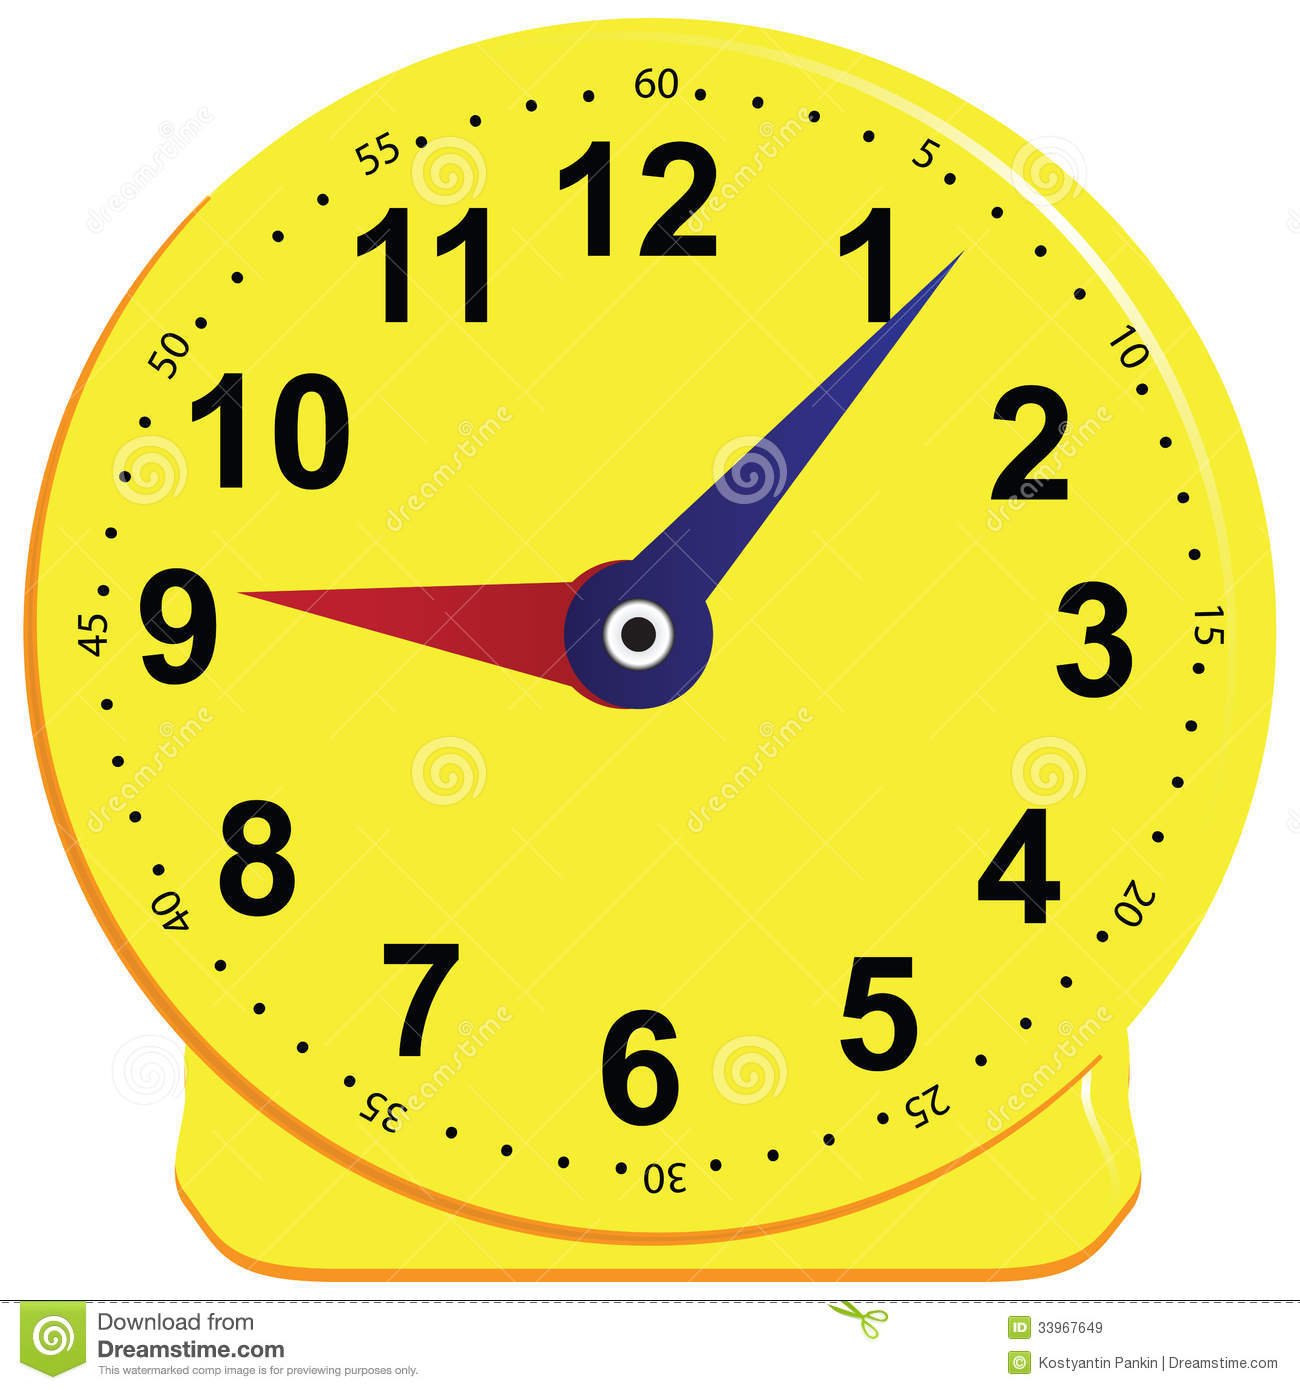 Clocks clipart teachers.